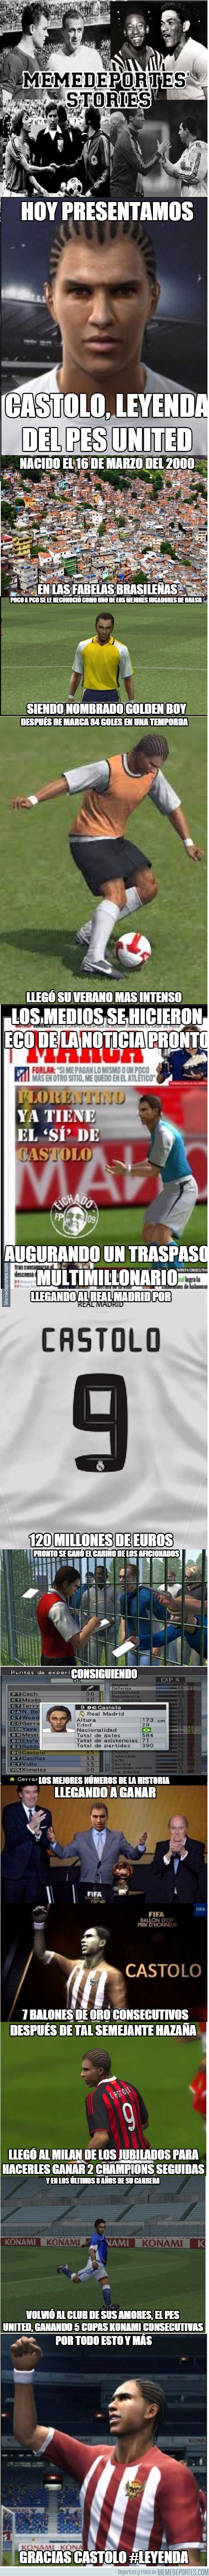 786314 - Memedeportes' stories: Castolo